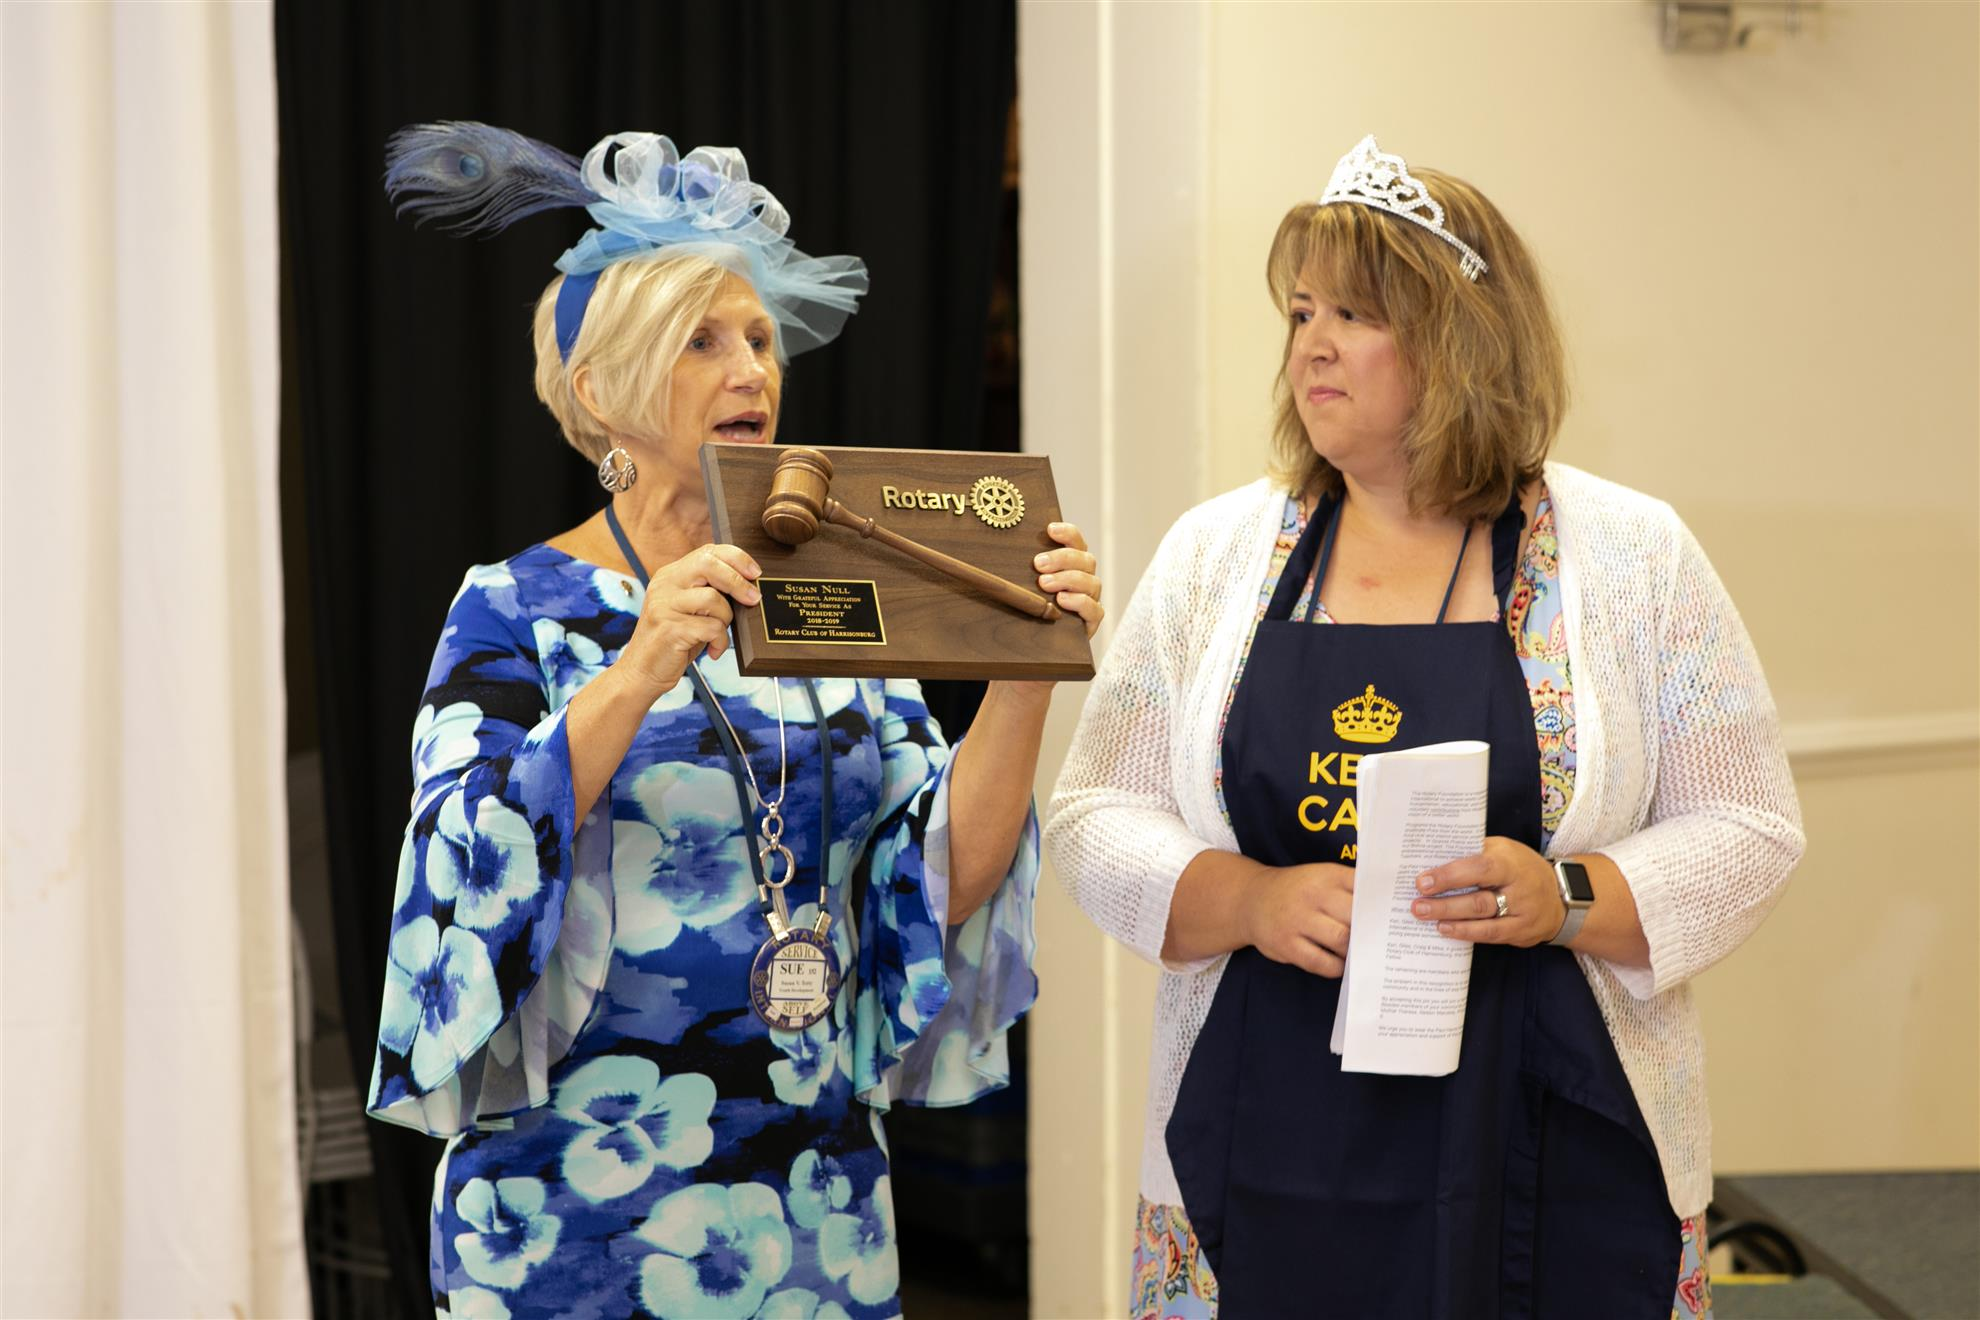 An apron, gavel, and tiara as gifts for a club well run